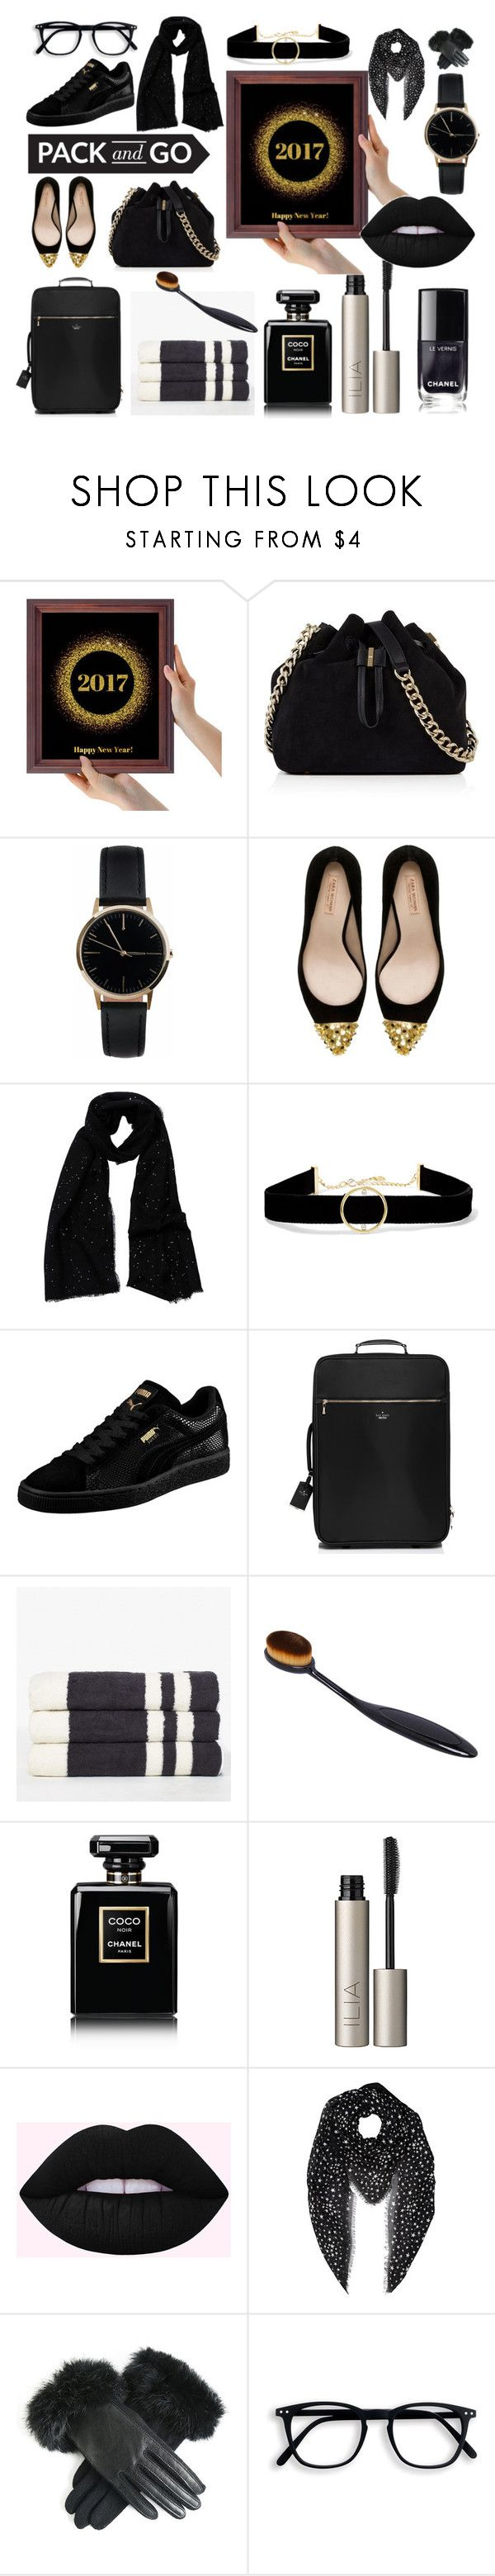 """Pack and go"" by oldcastlechrista ❤ liked on Polyvore featuring Karen Millen, Freedom To Exist, Zara, Tilo, Anissa Kermiche, Puma, Kate Spade, James Perse, Chanel and Ilia"